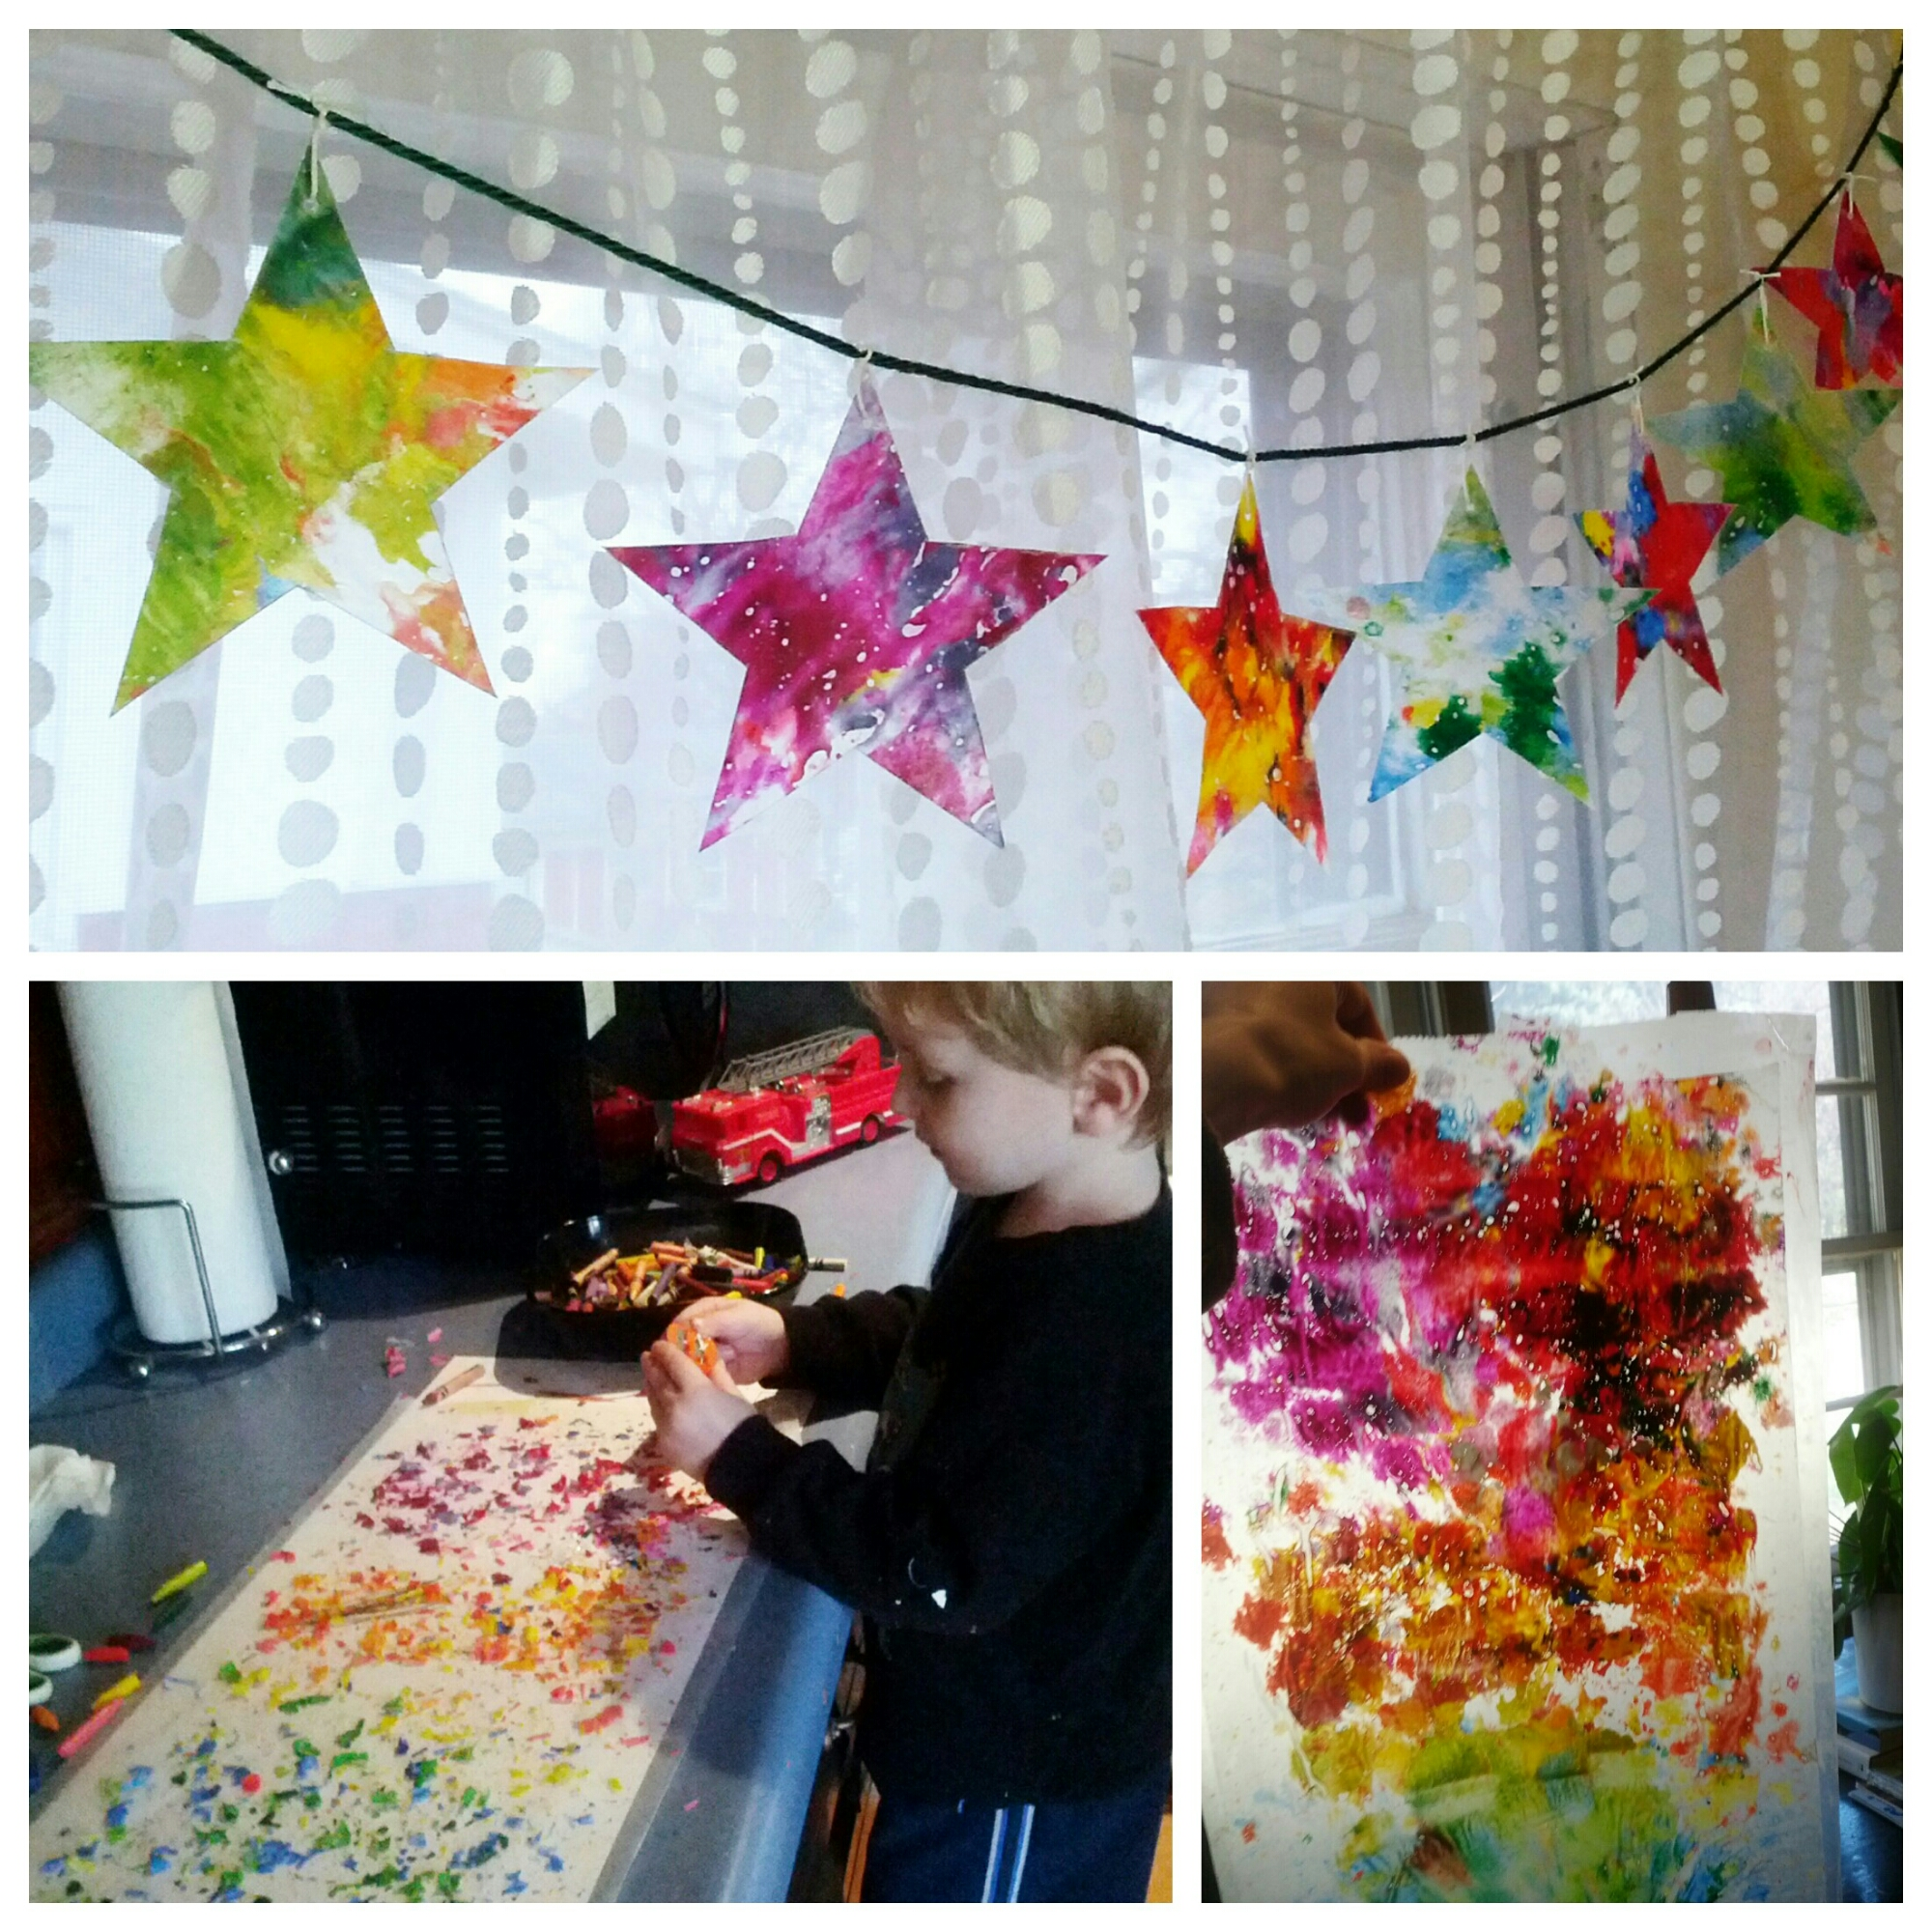 Making christmas ornaments with crayons - Kids Christmas Diy Paper Star Ornament Craft Uses Crayons Wax Paper For A Faux Stained